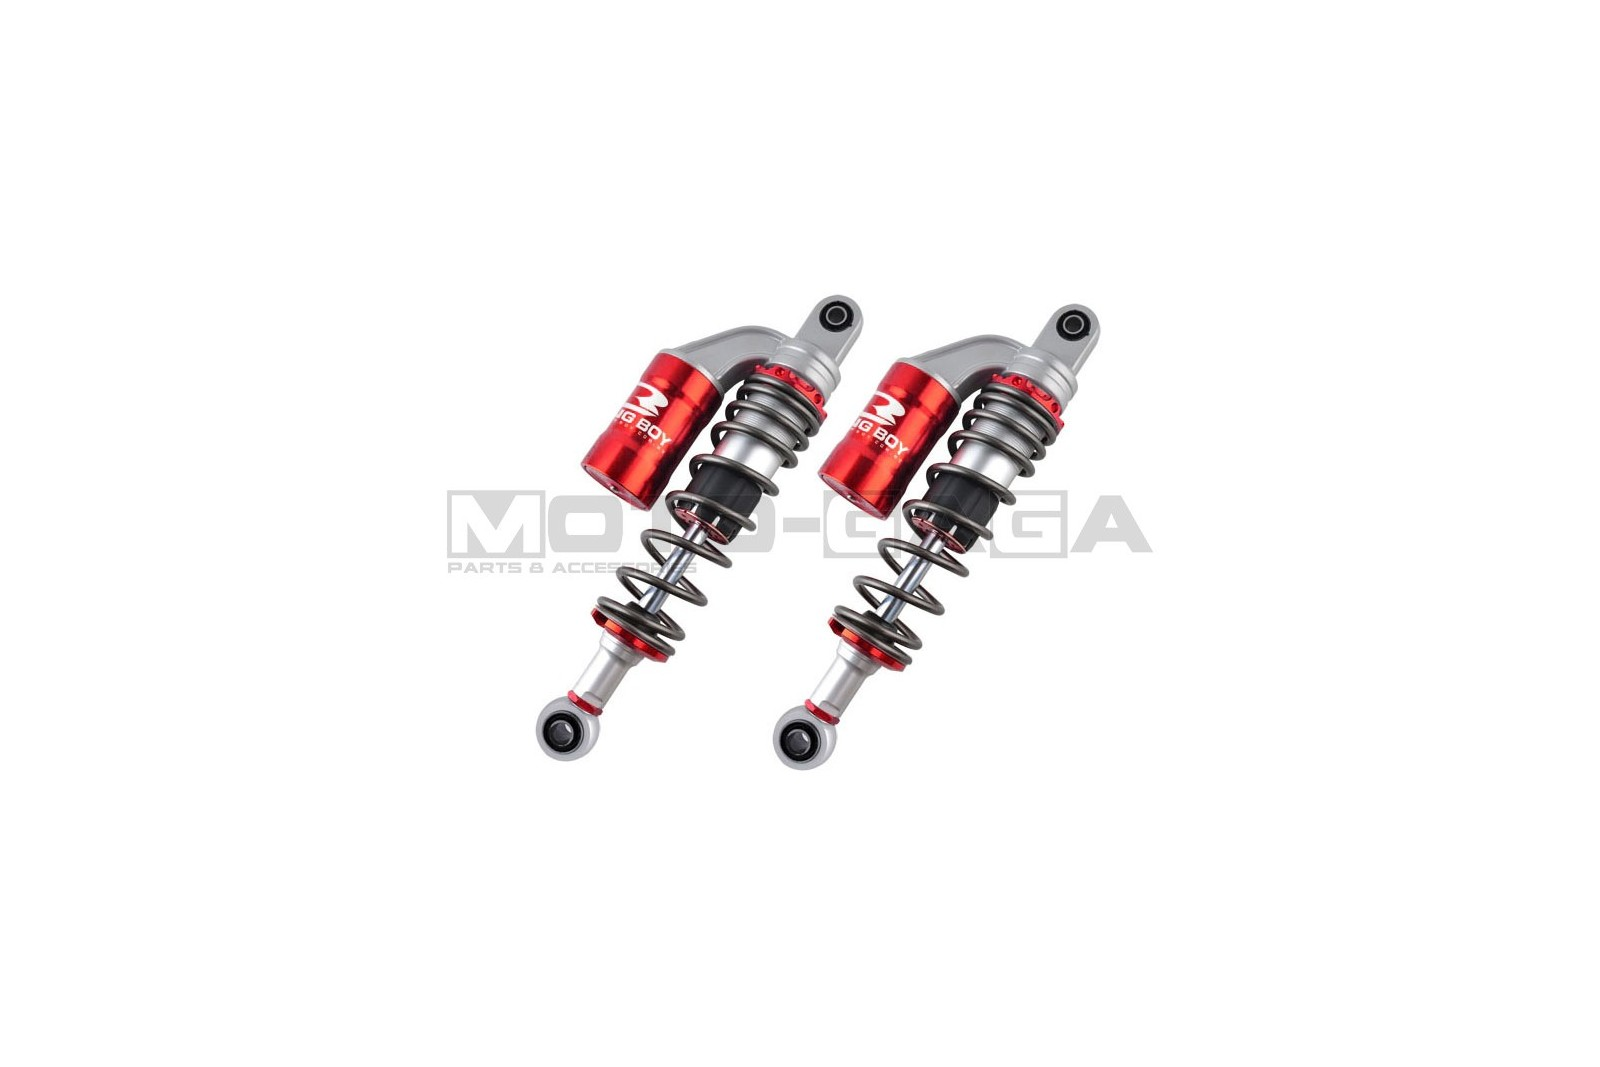 Racing Boy 335mm Shock Absorbers Eb Series Universal